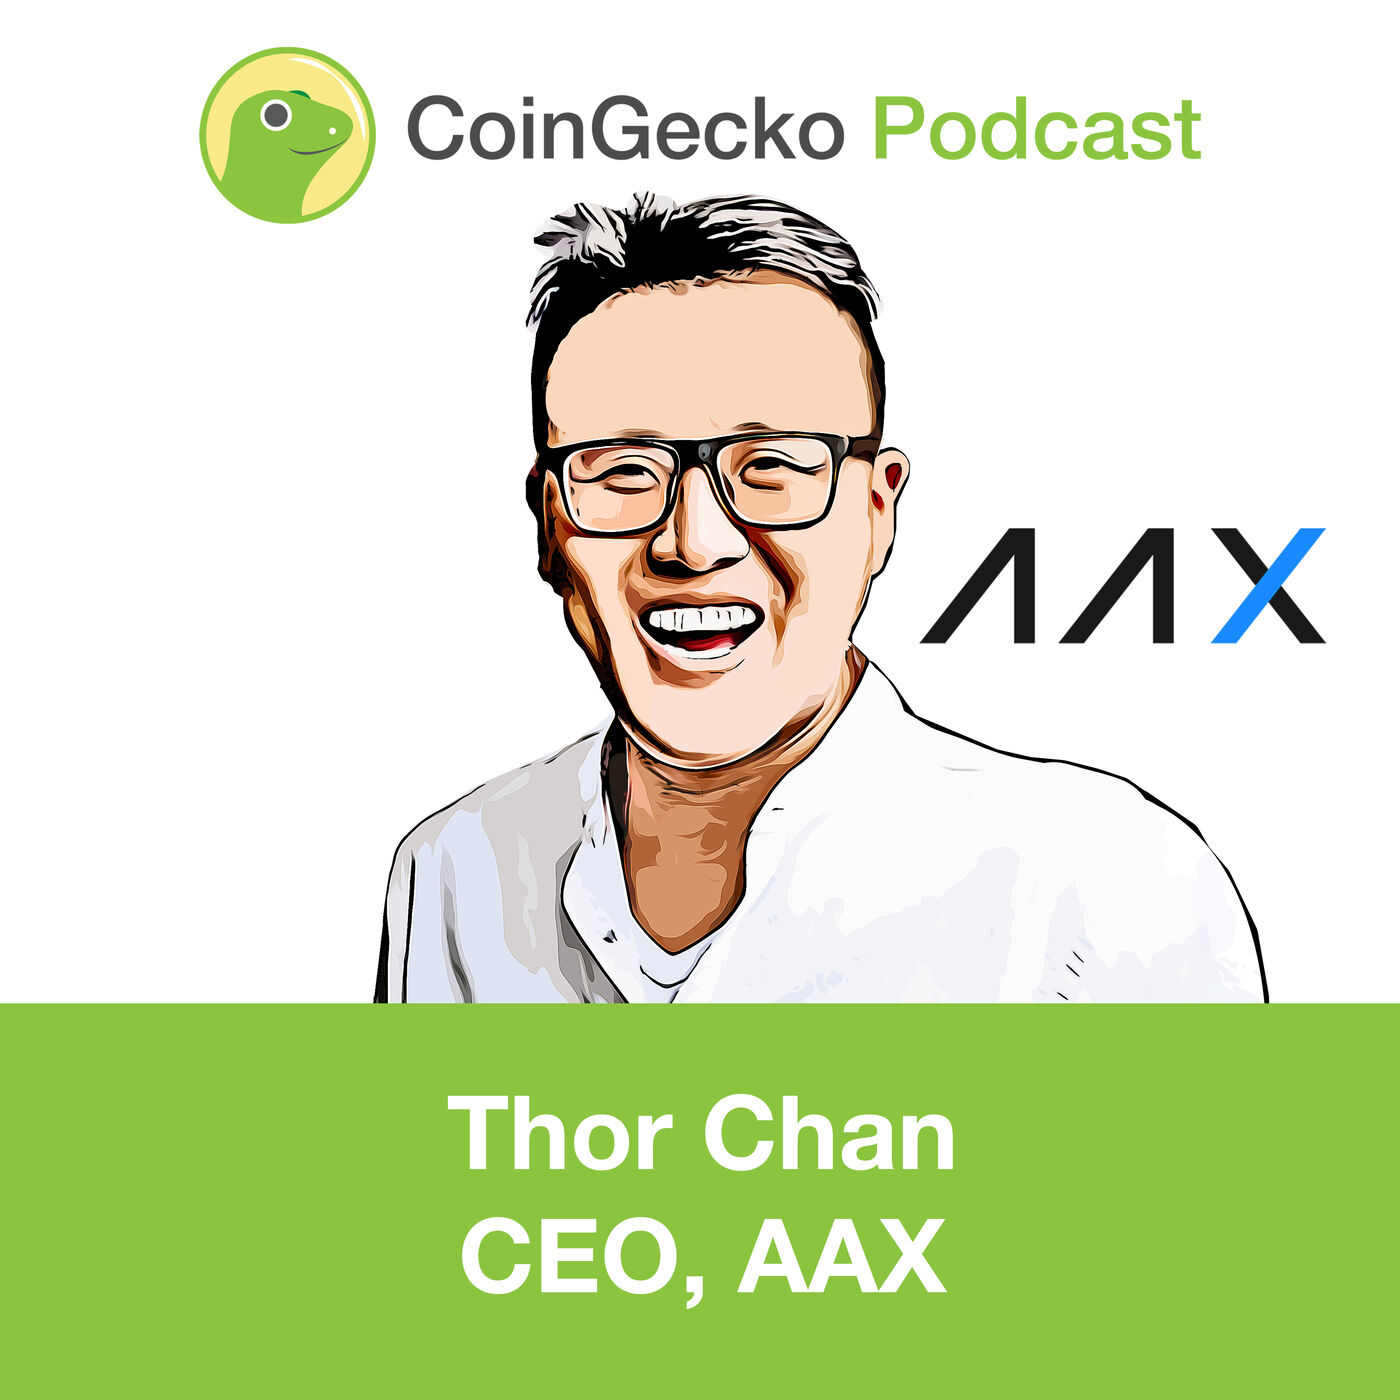 Thor Chan Explains AAX Technology - Ep. 18